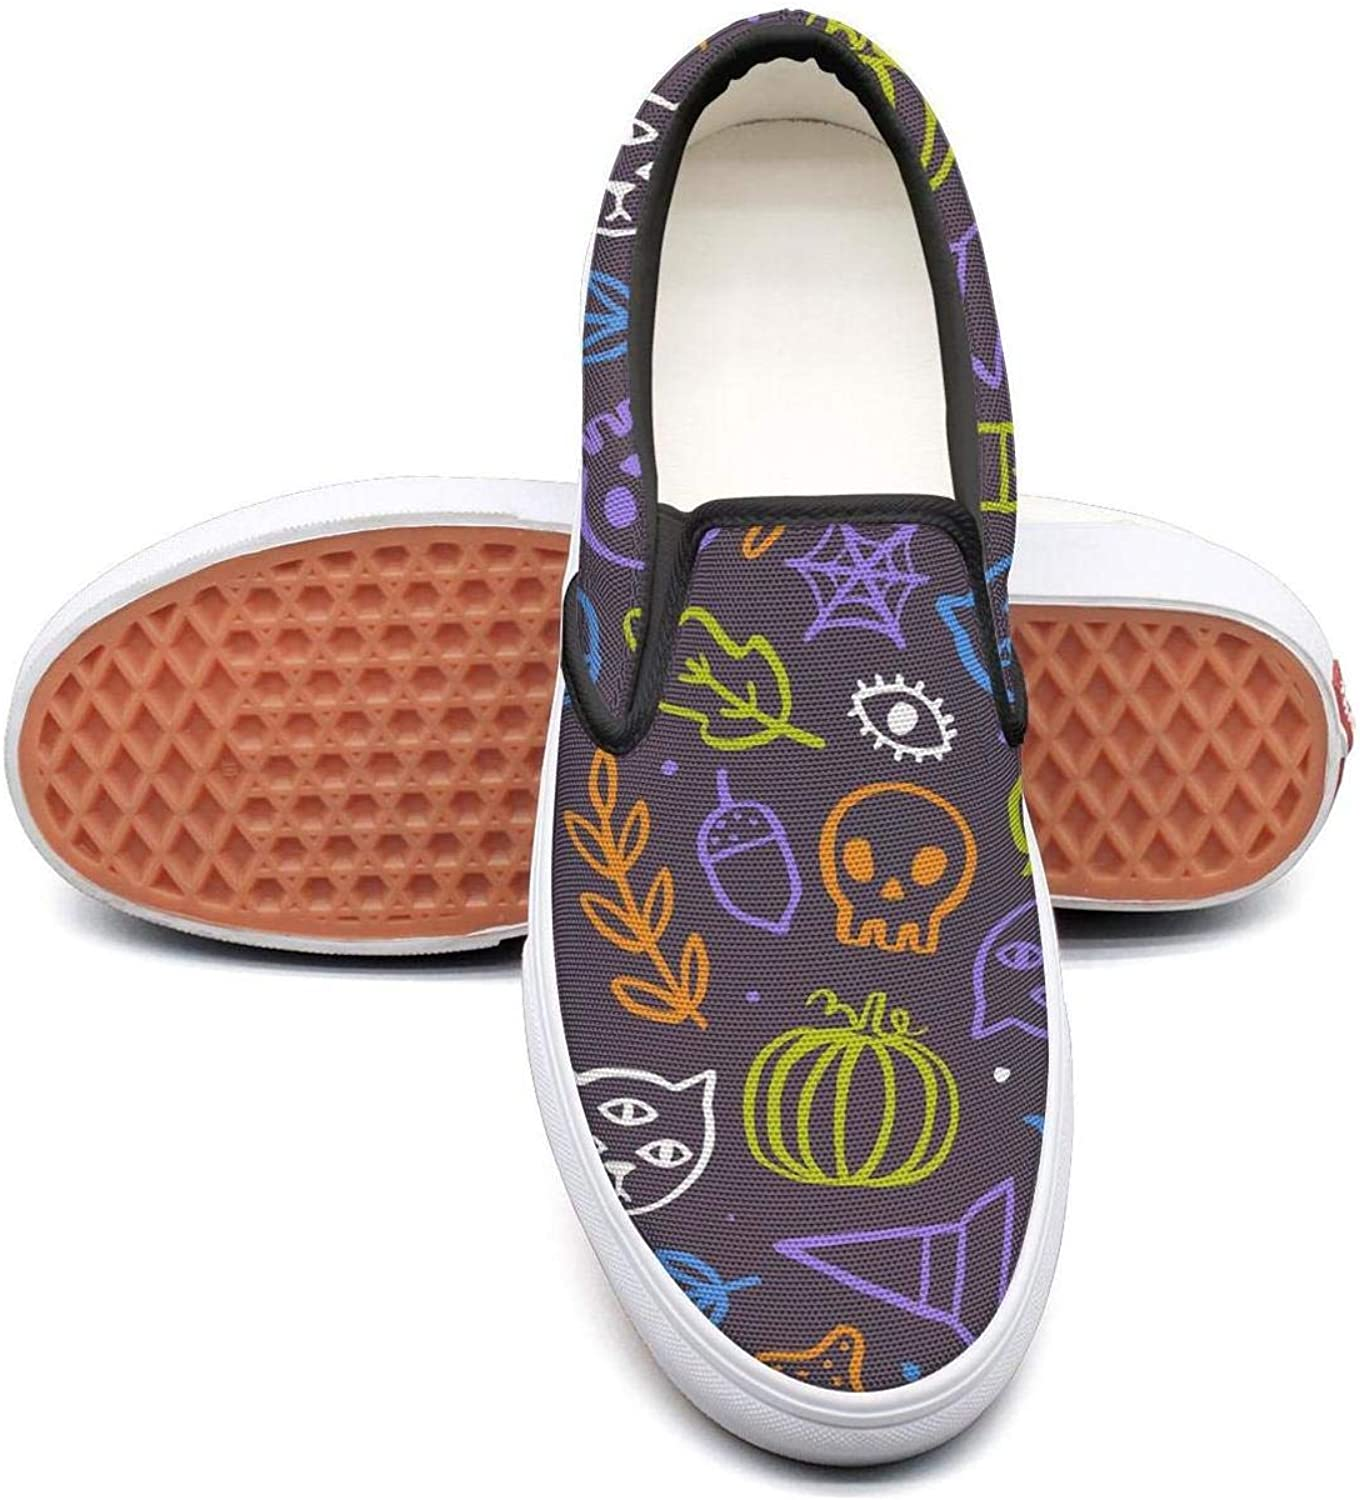 Sernfinjdr Women's Cute Trendy Halloween Fashion Casual Canvas Slip on shoes Designer Cycling Sneakers